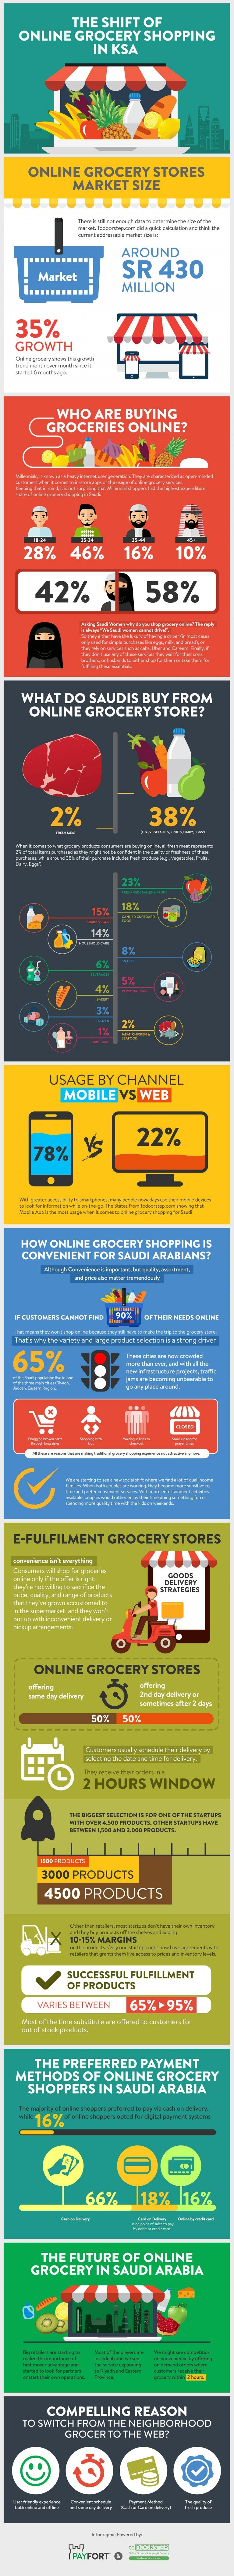 Shopping habits in KSA are moving online #SMM #Infographic